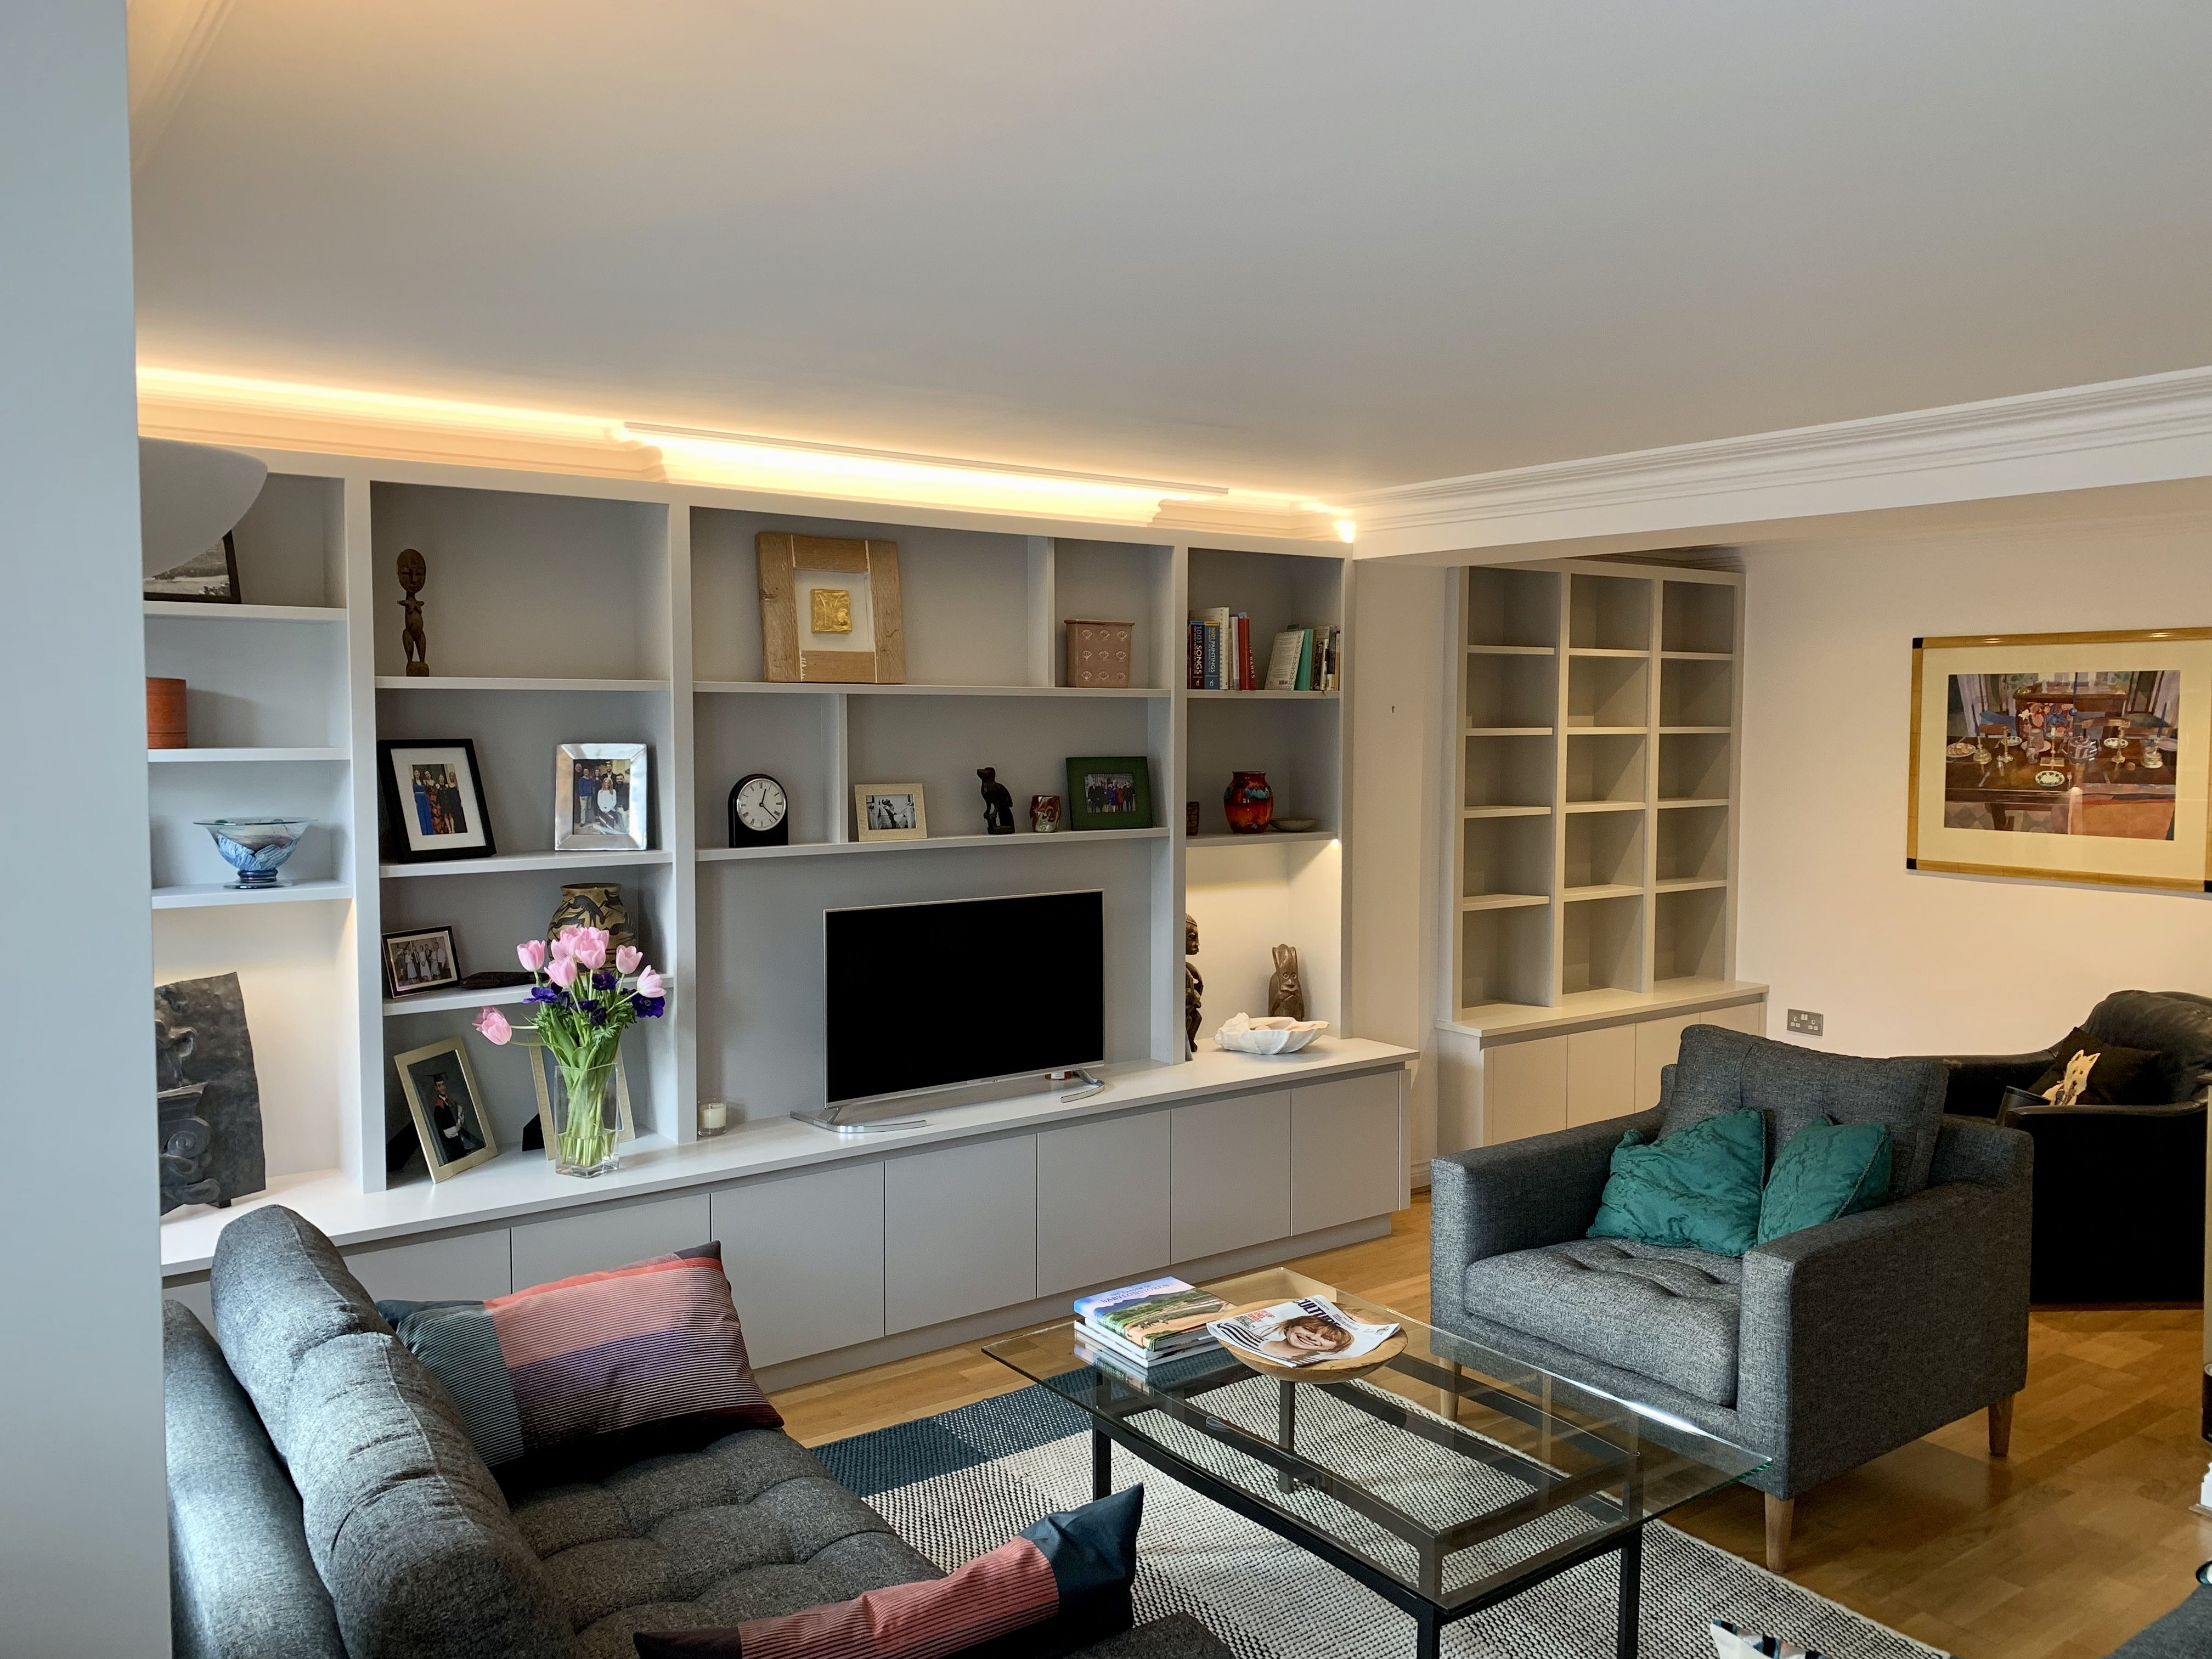 Wall To Wall Tv Media Unit With Areas For Books And Display Living Room Wall Units Shelving Units Living Room Living Room Storage Solutions